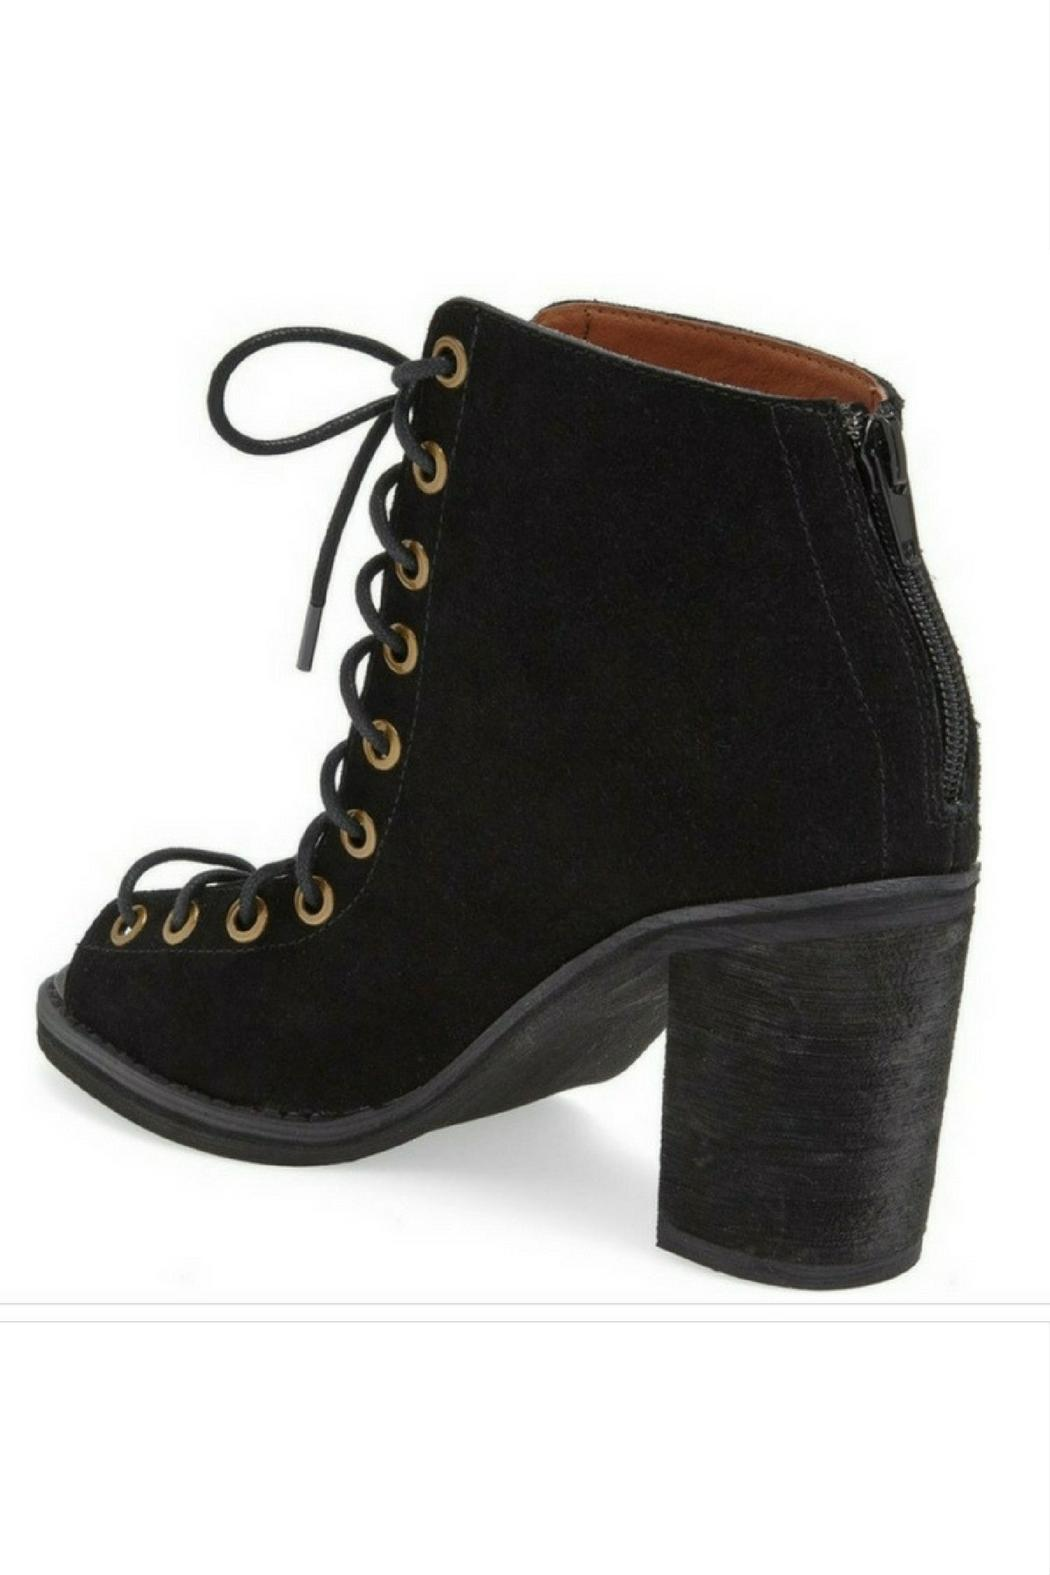 2eefc8710 Jeffrey Campbell Cors Lace Up Heels from Orlando by Tuni Trendy ...